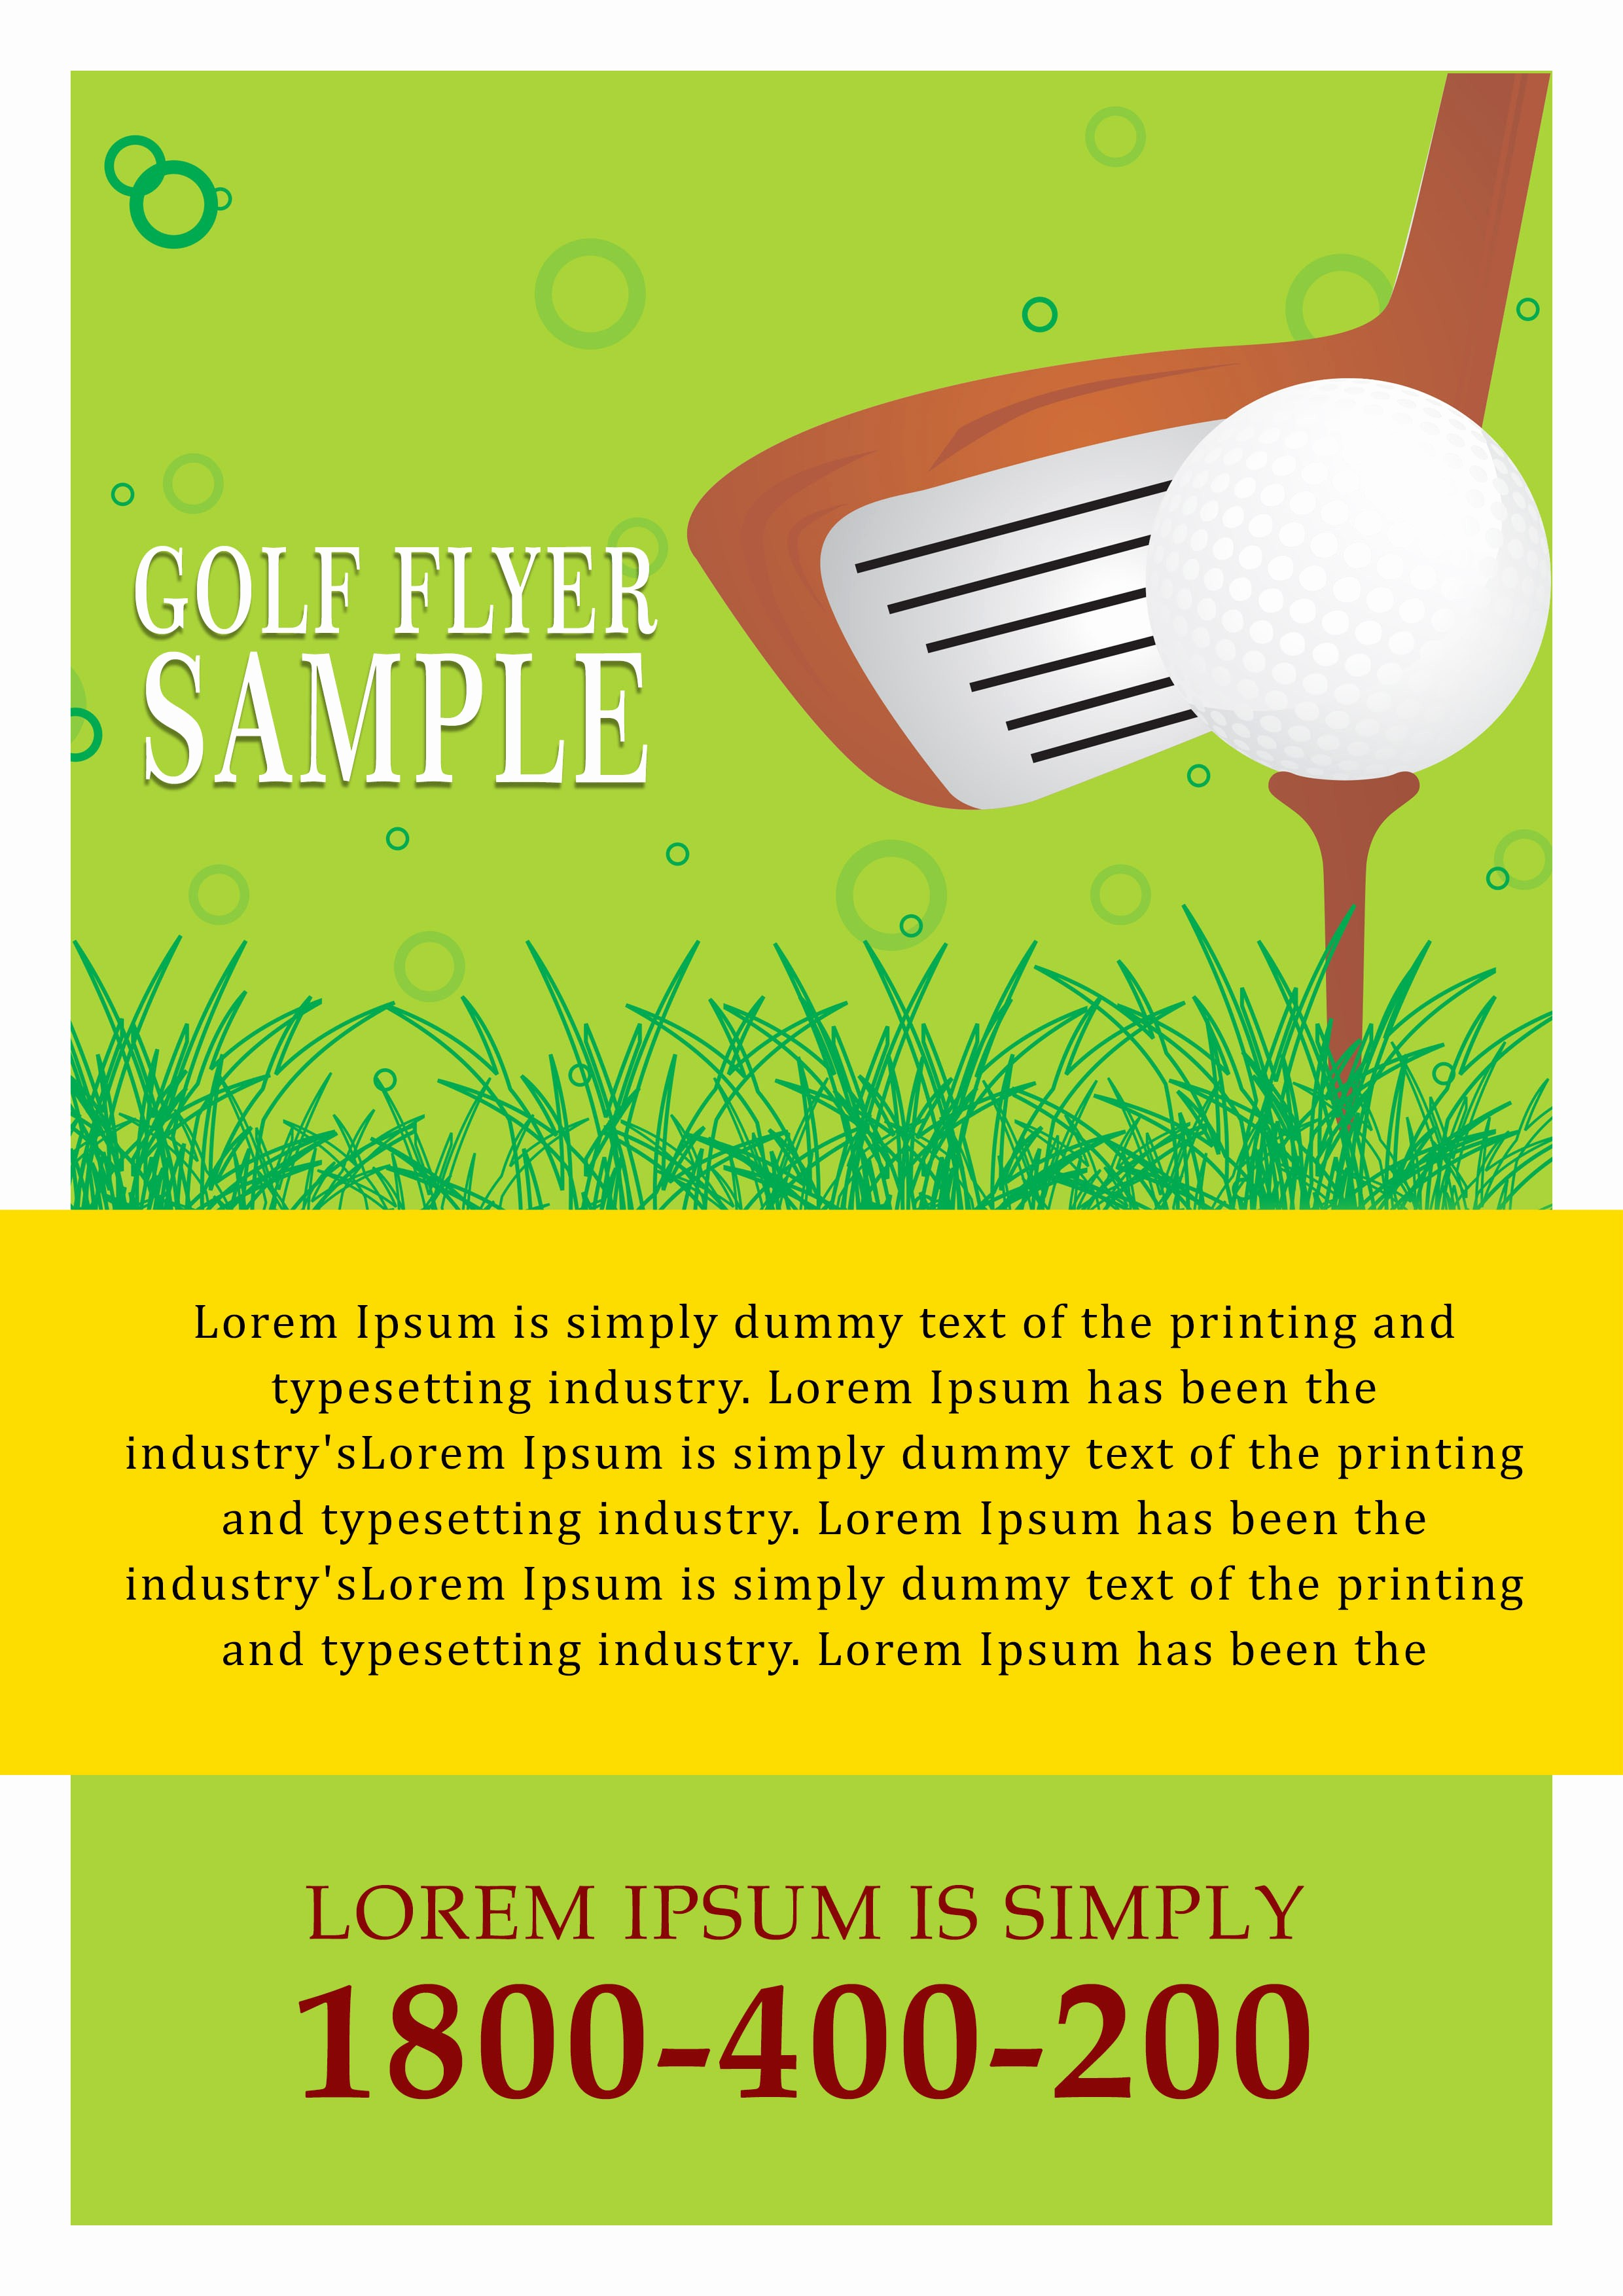 Free Golf Outing Flyer Template Lovely 15 Free Golf tournament Flyer Templates Fundraiser